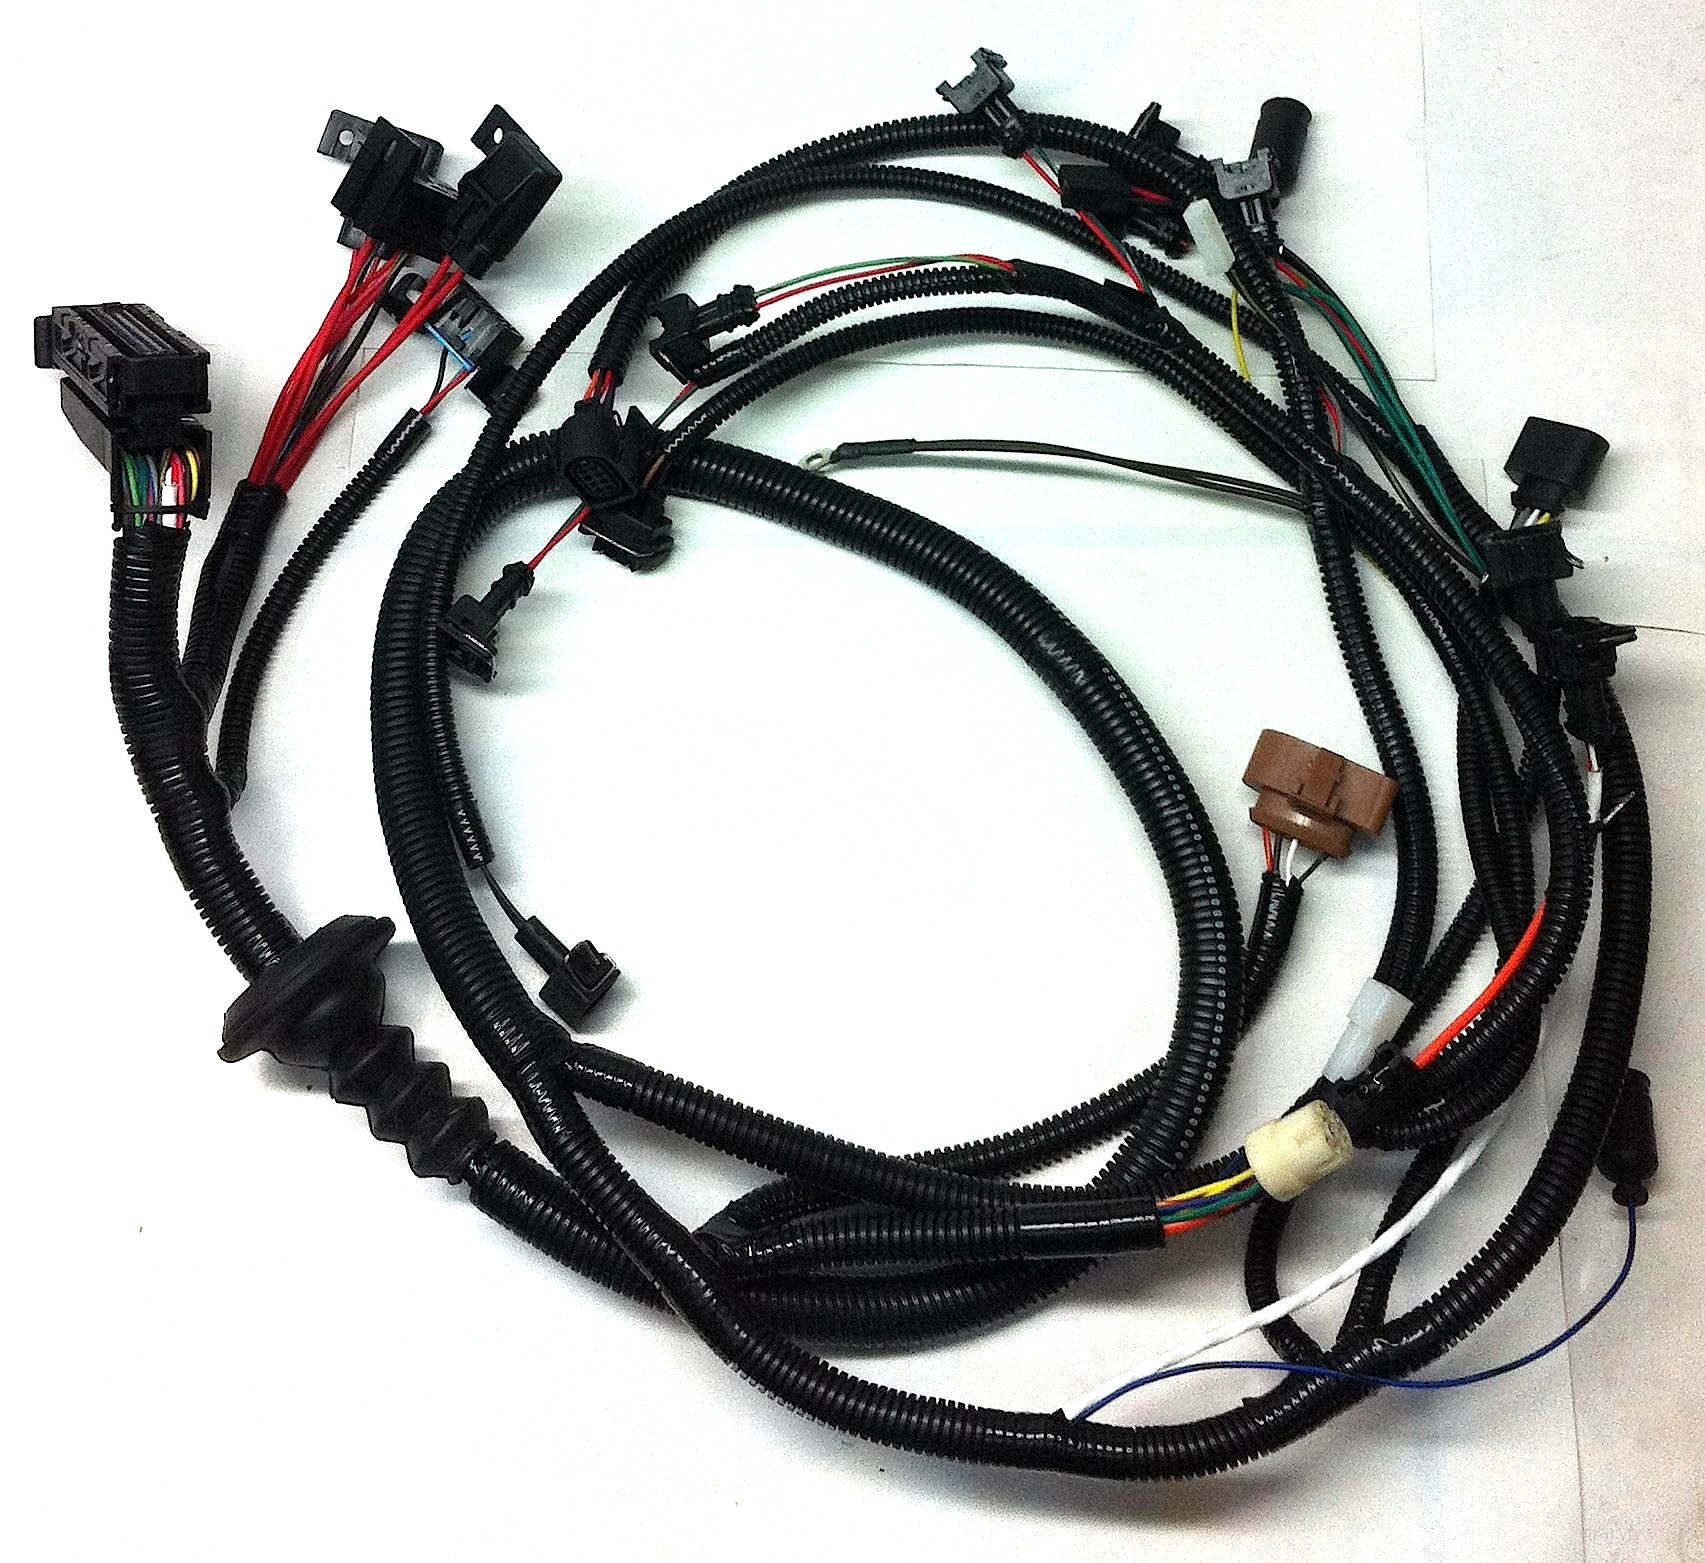 Wiring_Harness_2LR 2lr tiico conversion wiring harness foreign auto & supply, inc wiring harness supplies at gsmx.co